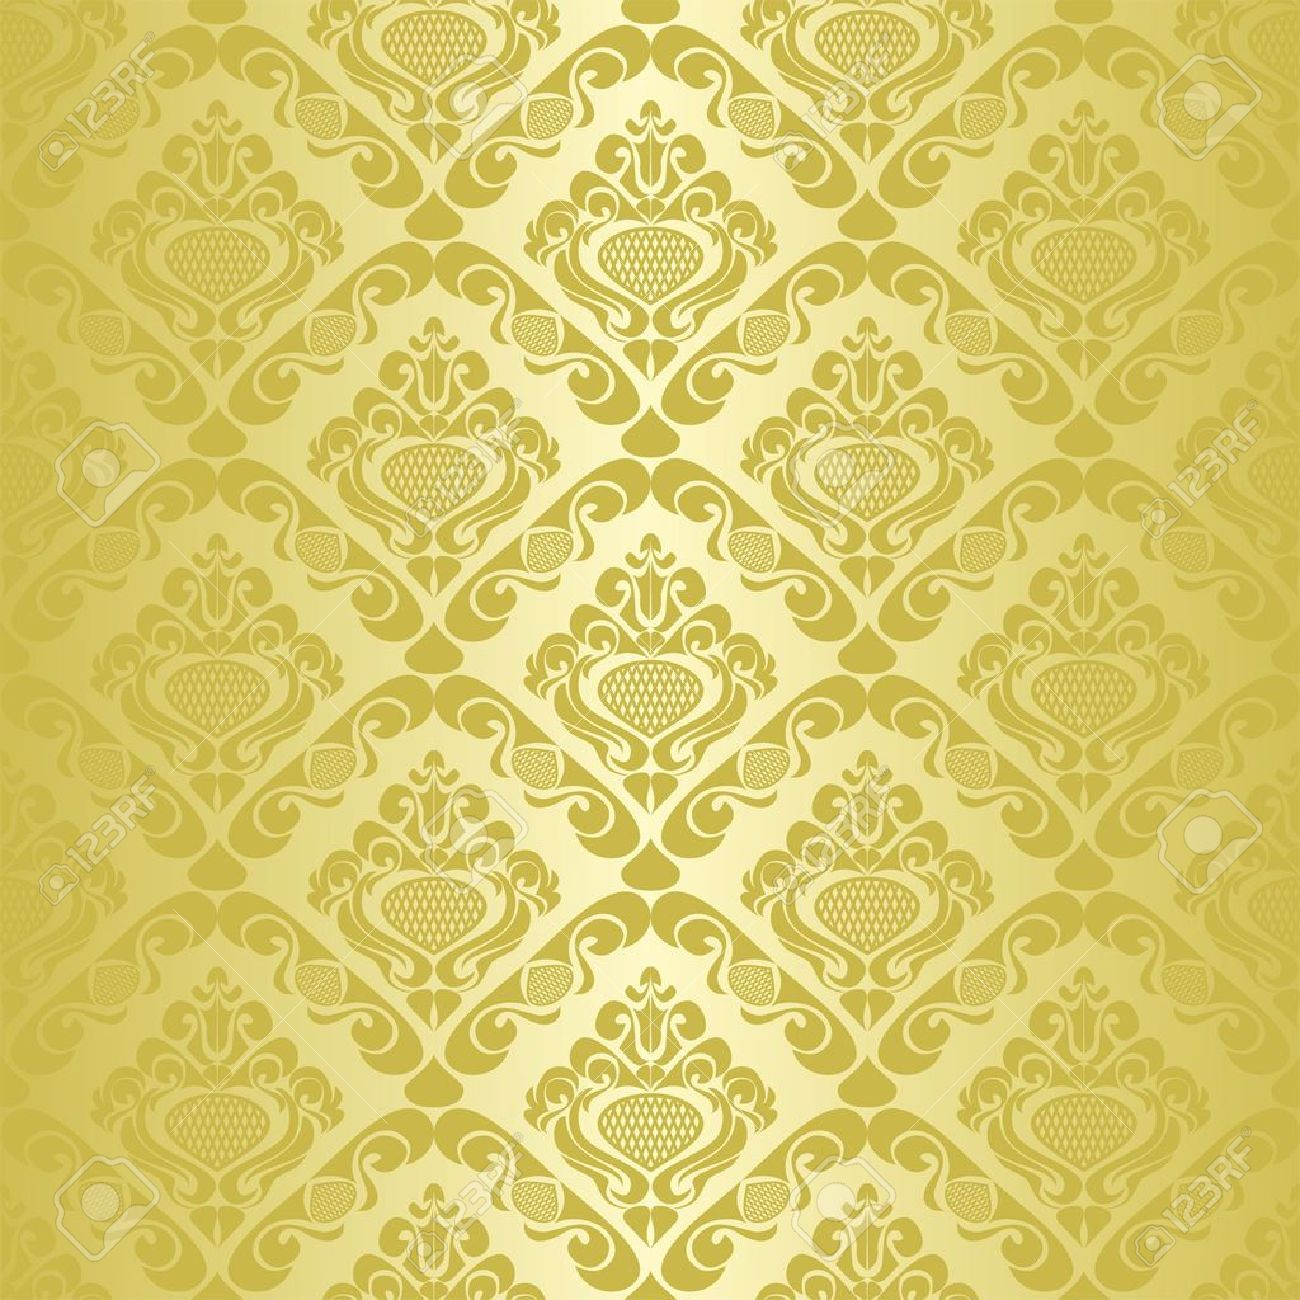 white and gold floral wallpaper - photo #29